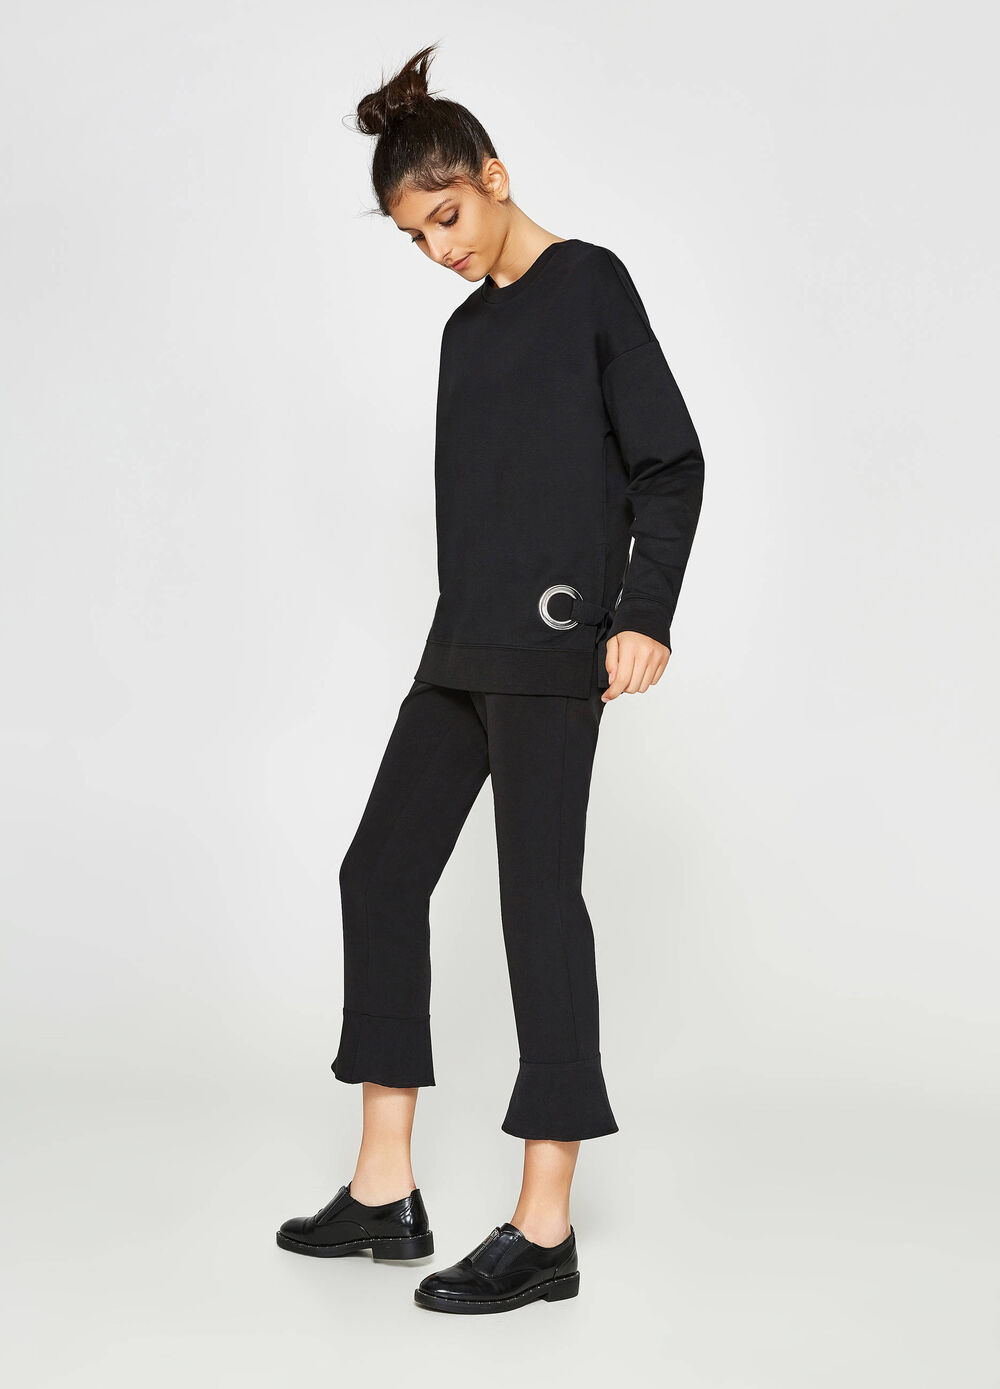 Cotton pullover with side ties